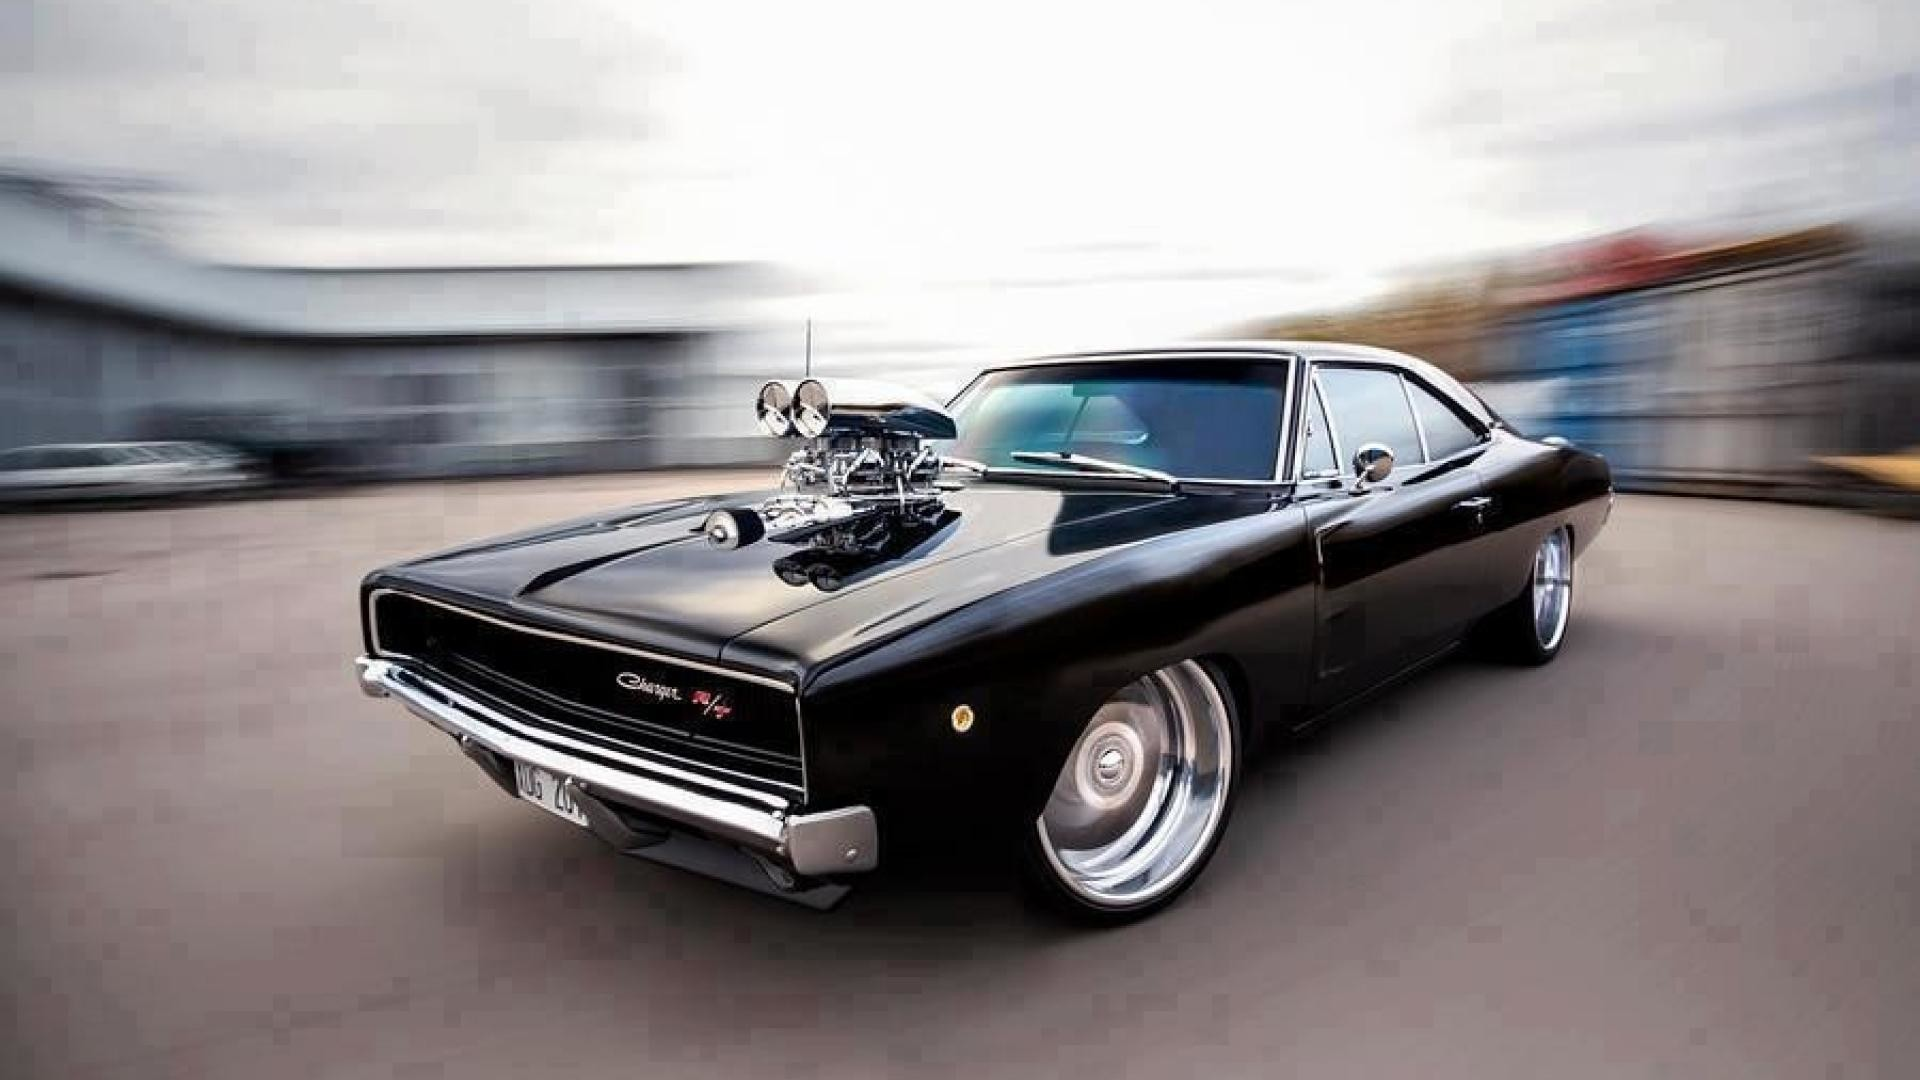 Cars dodge charger r/t carré callaway challenger wallpaper   (65309)